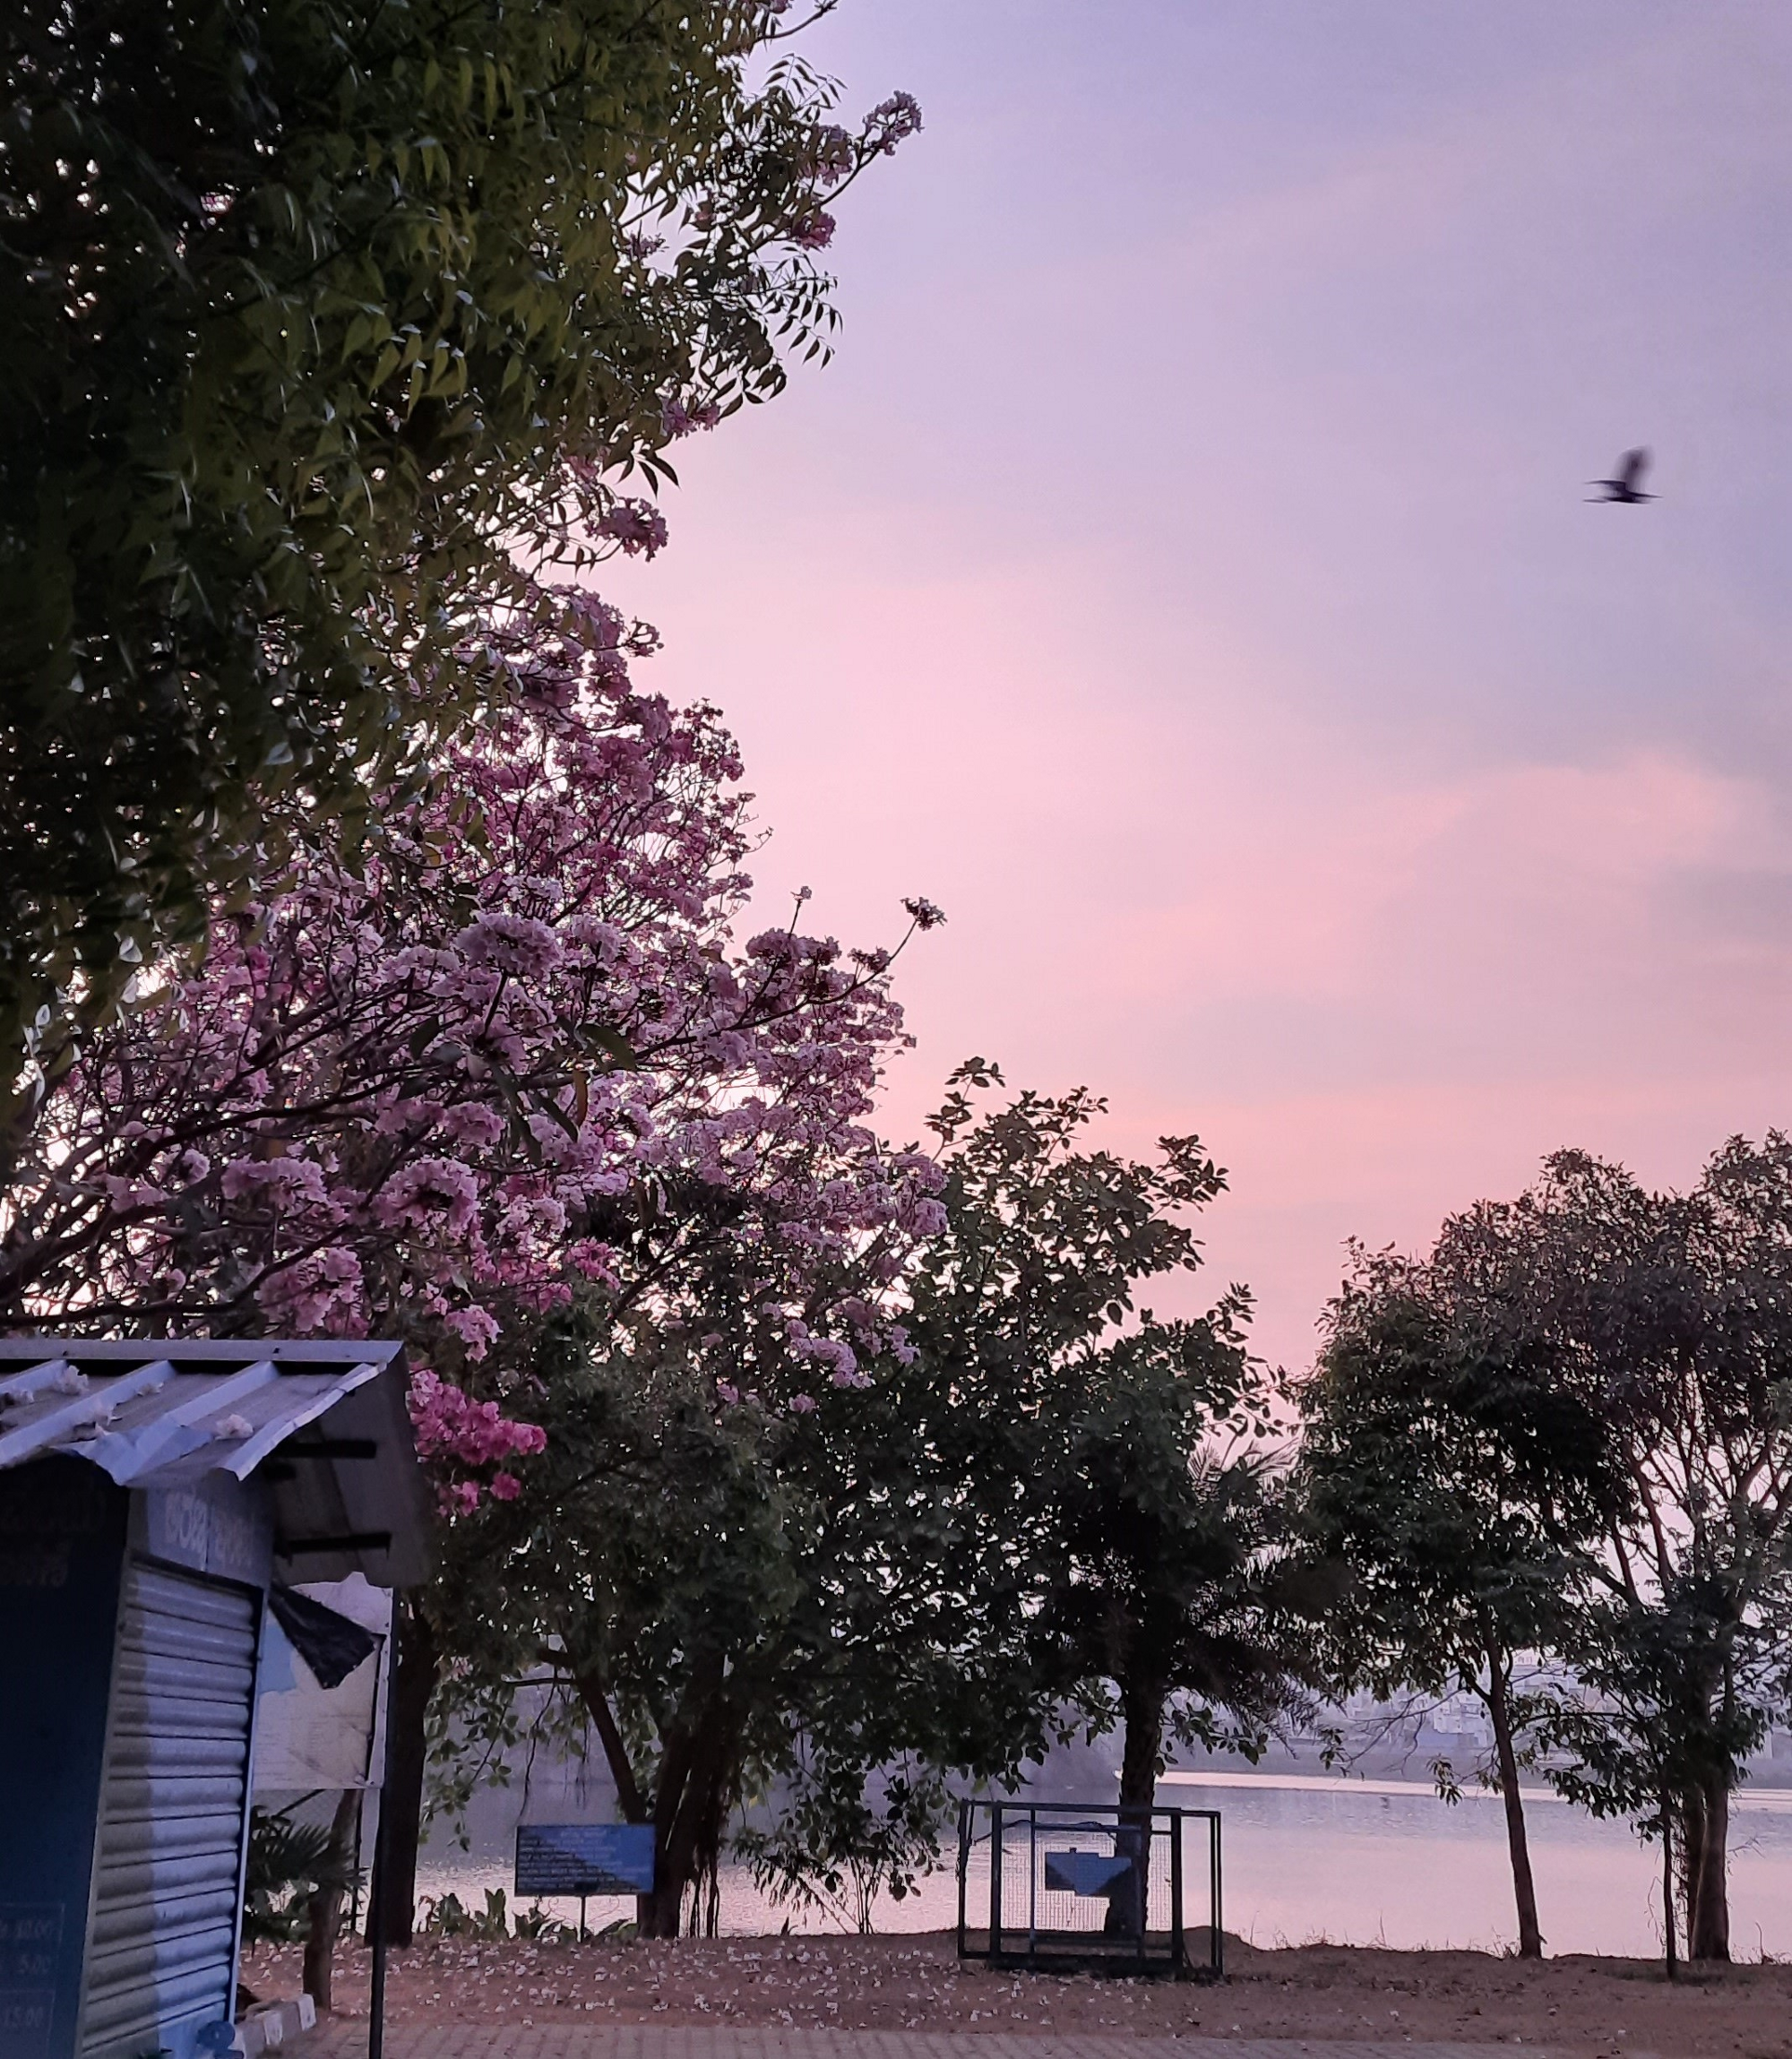 A photo of a tree blooming with flowers during sunrise